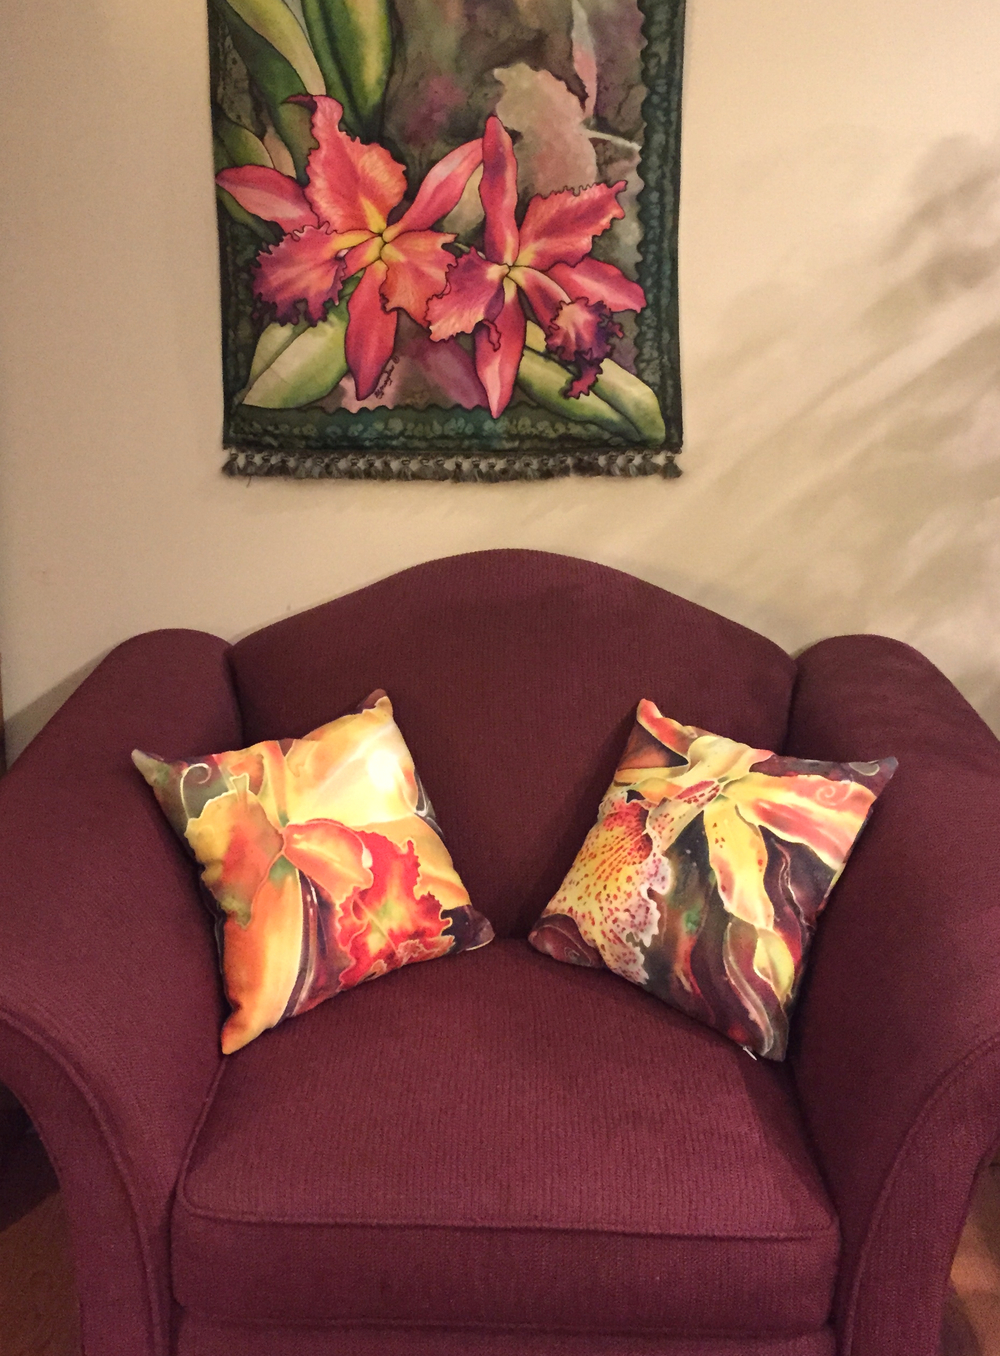 "These are the 14"" square pillows - they really liven up the room plus continue the orchid theme!"